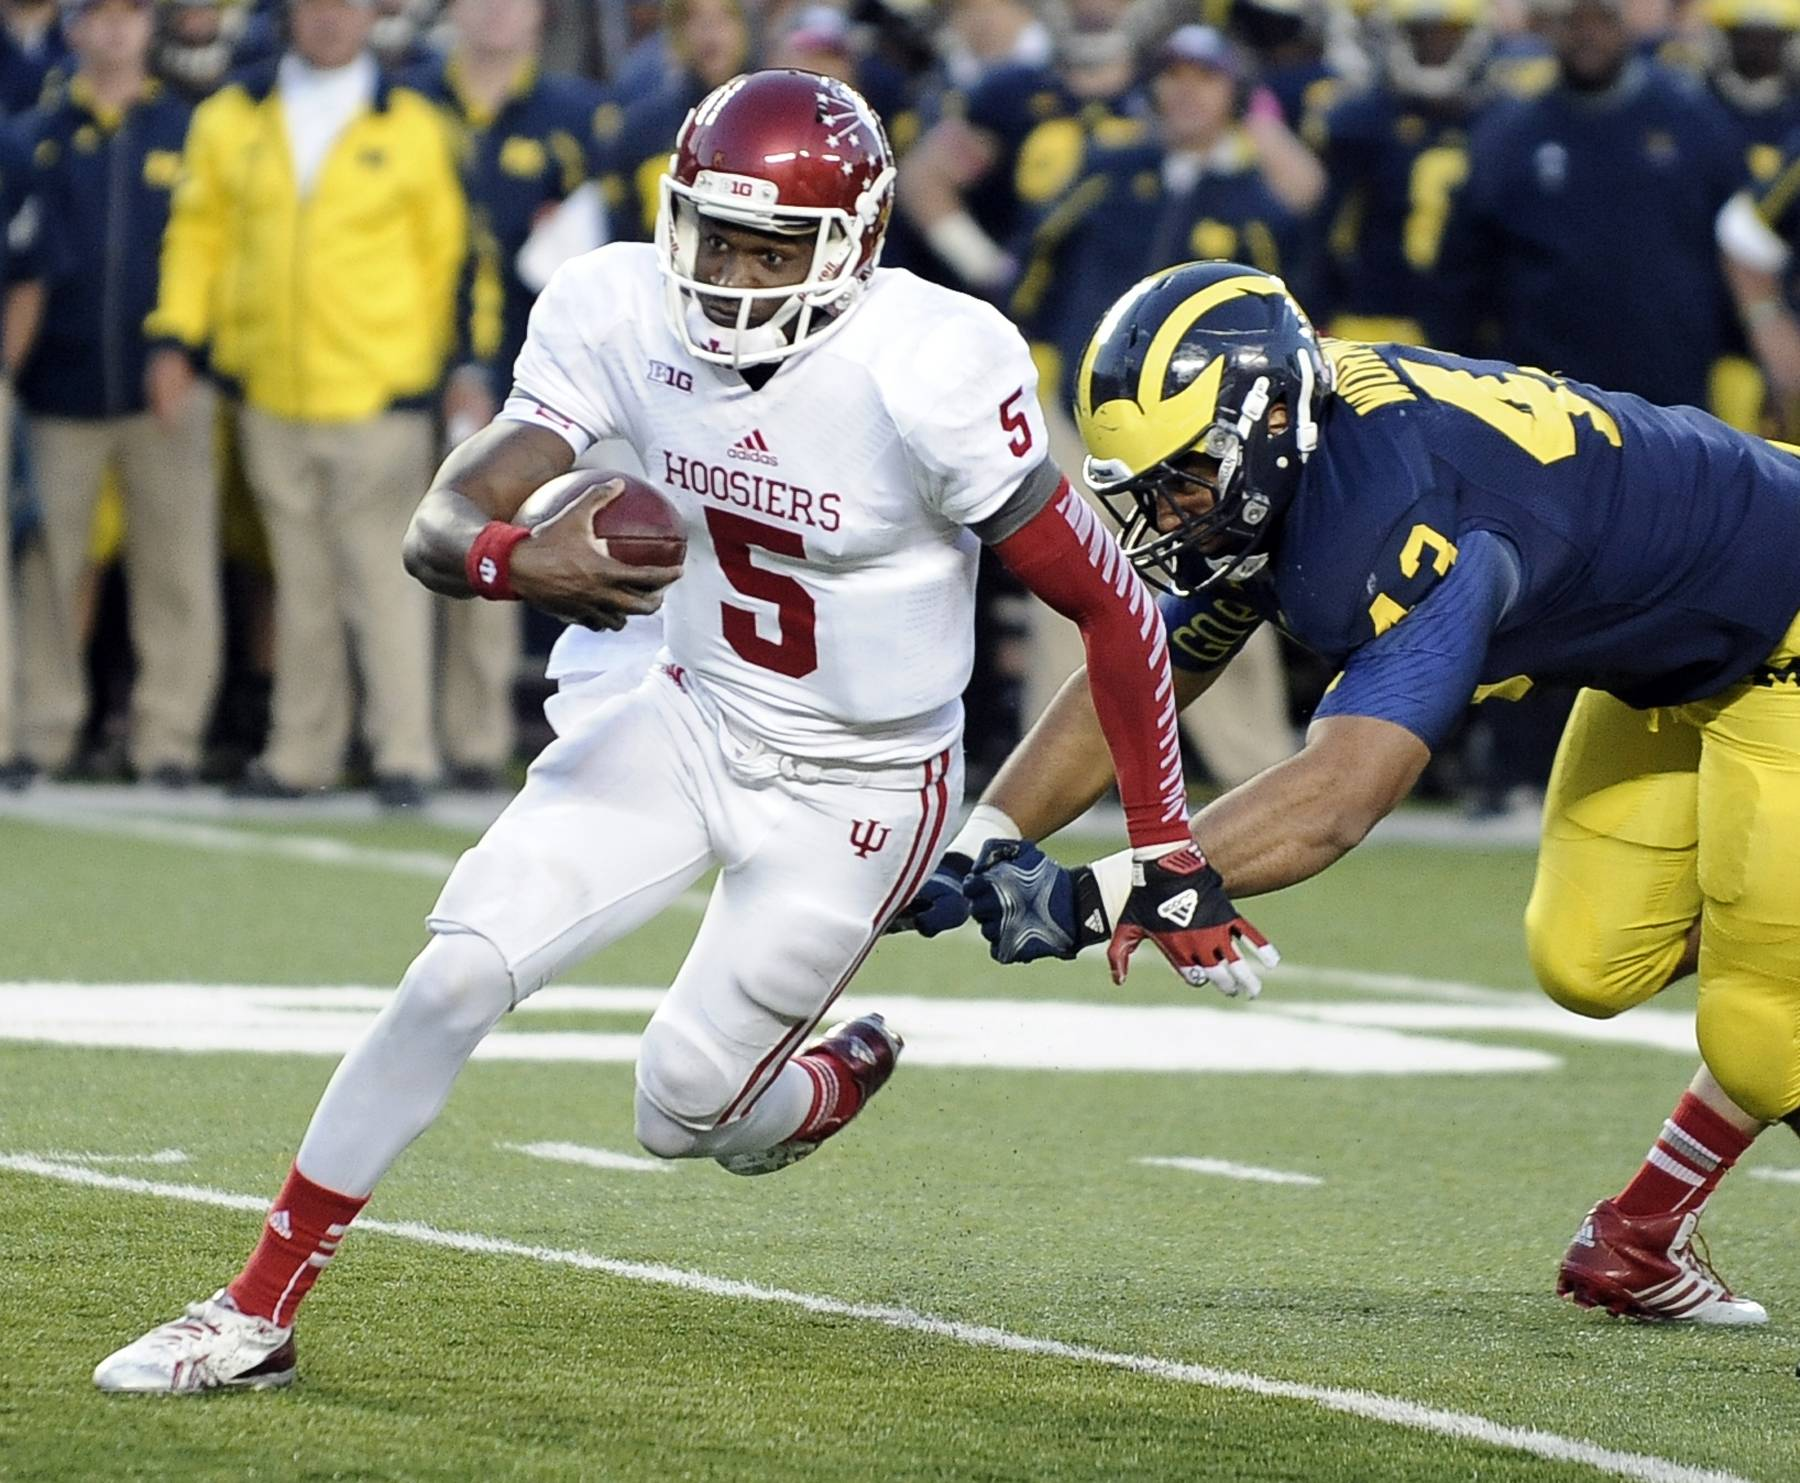 Indiana quarterback Tre Roberson runs past Michigan defensive end Chris Wormley and into the end zone for a fourth-quarter touchdown. Roberson is leaving Indiana and will transfer to another school.